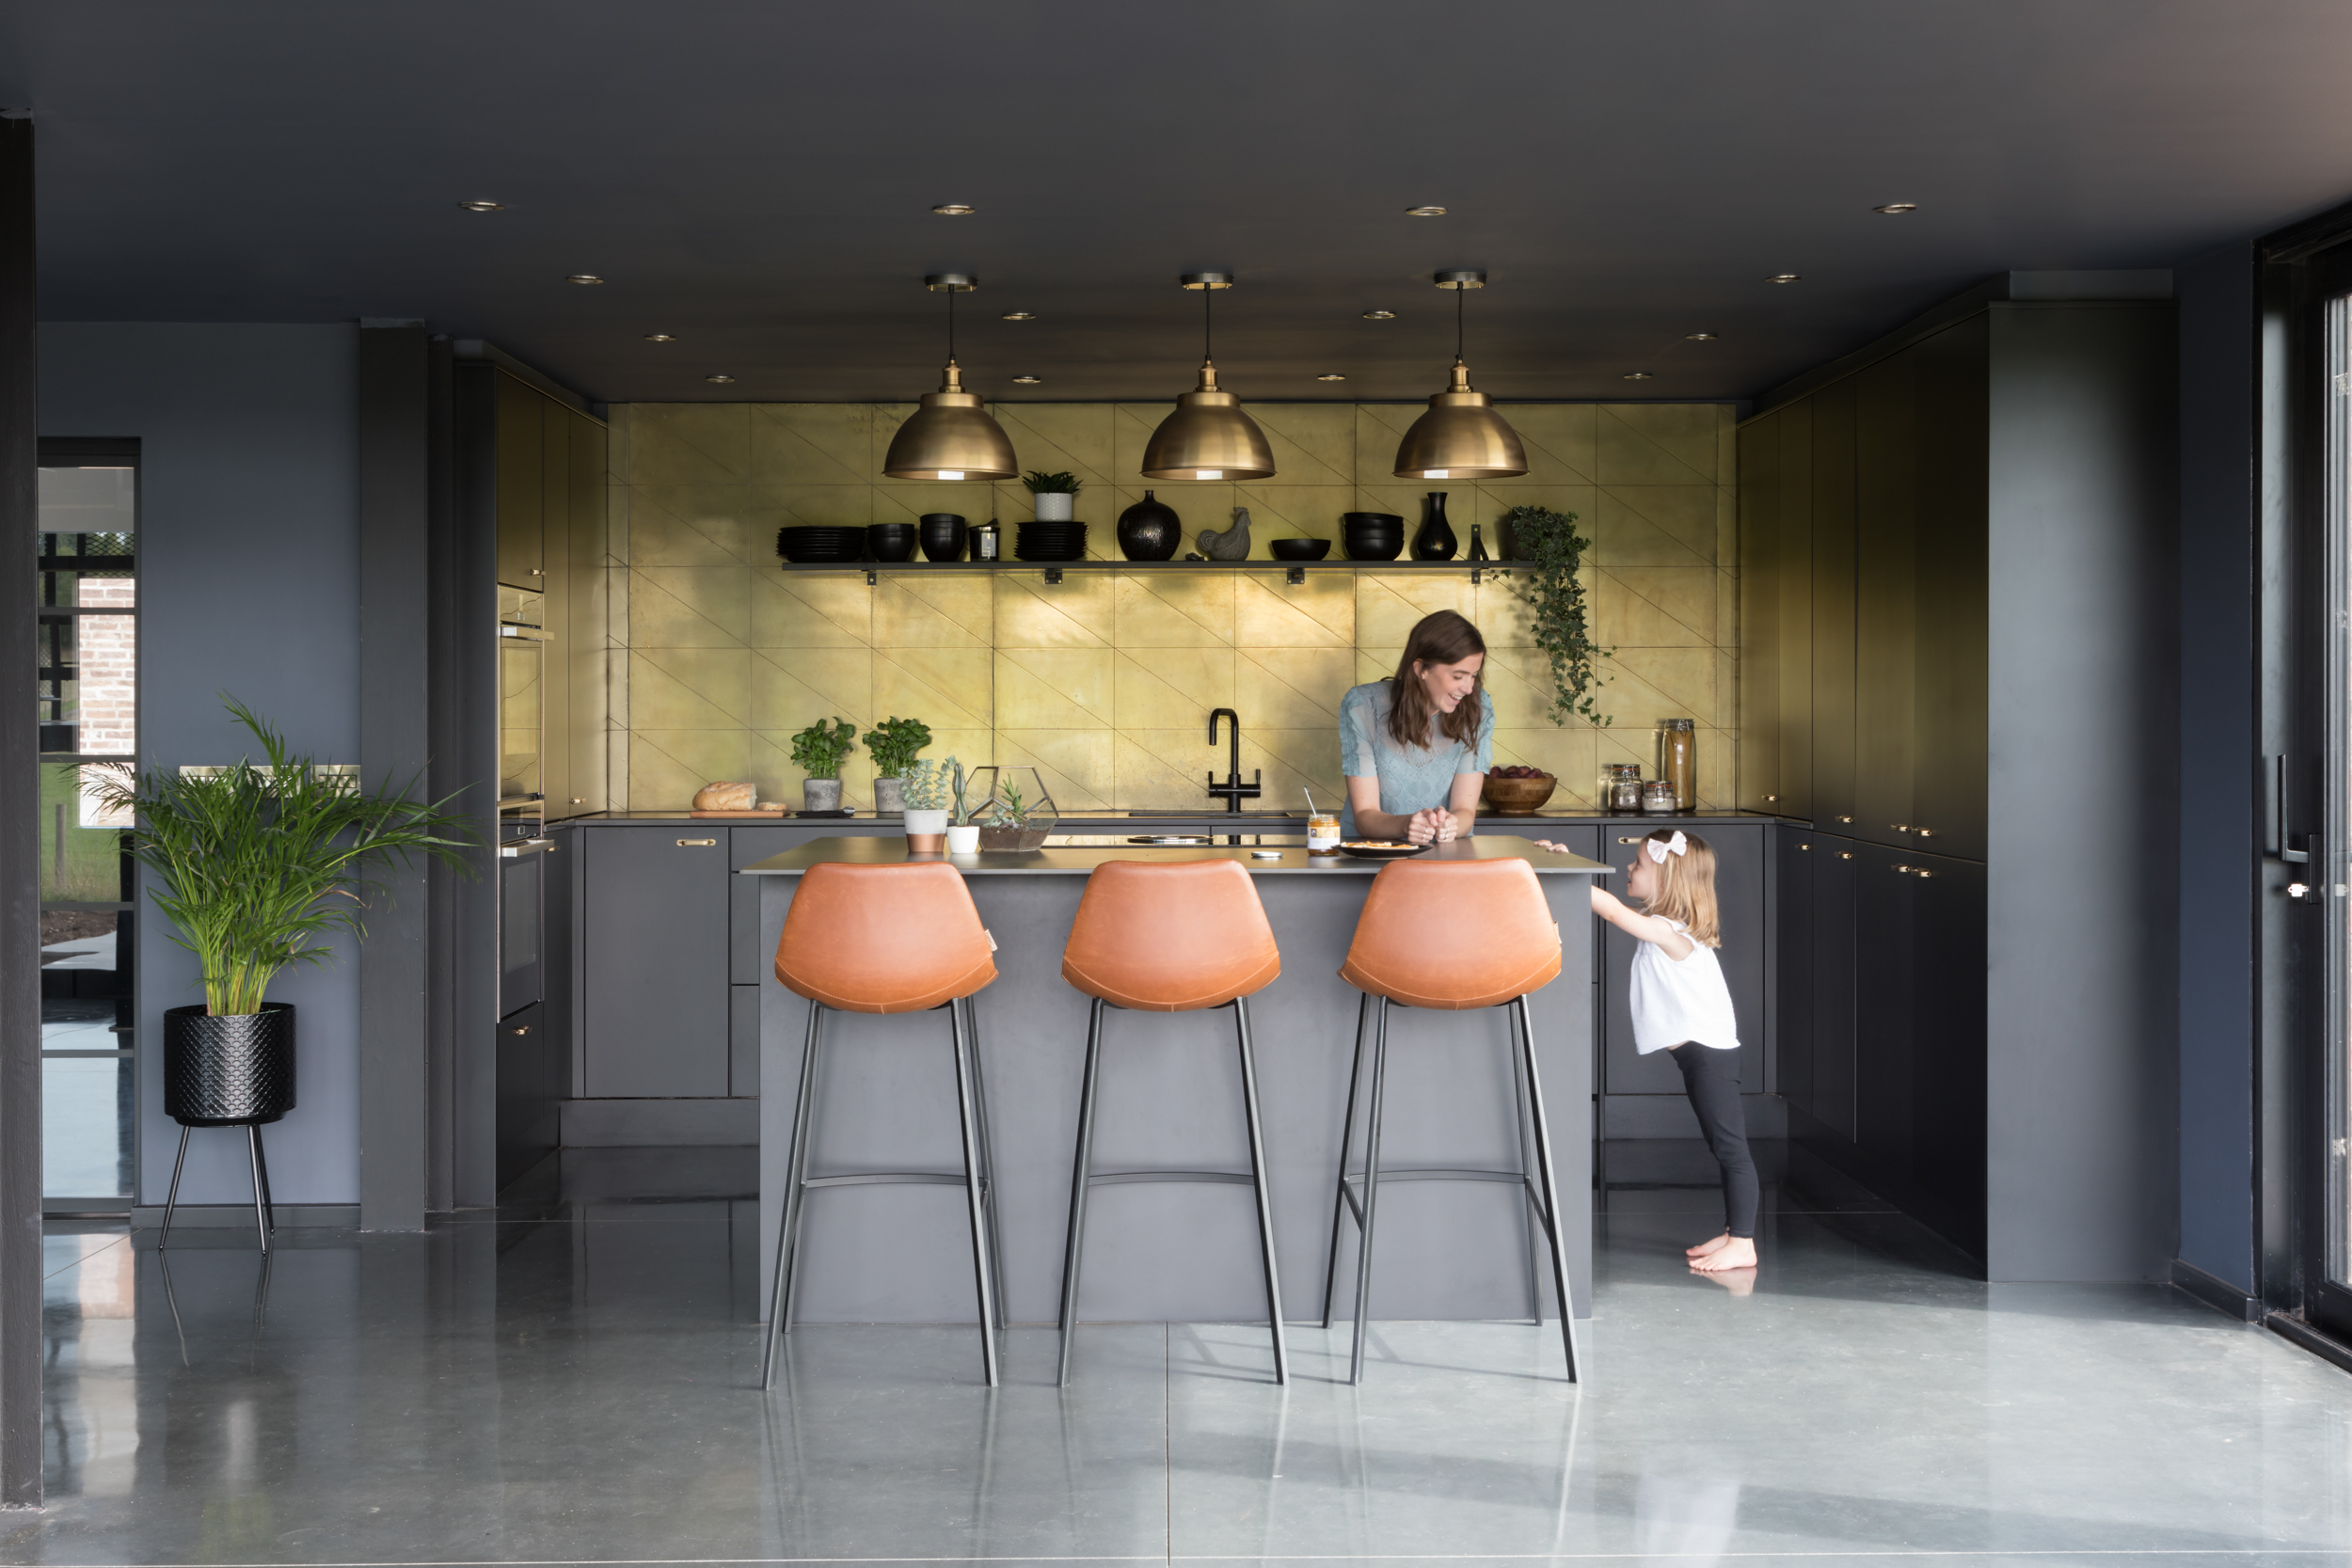 Paul Craig, Interior Photographer, People Photography, London, Kitchen